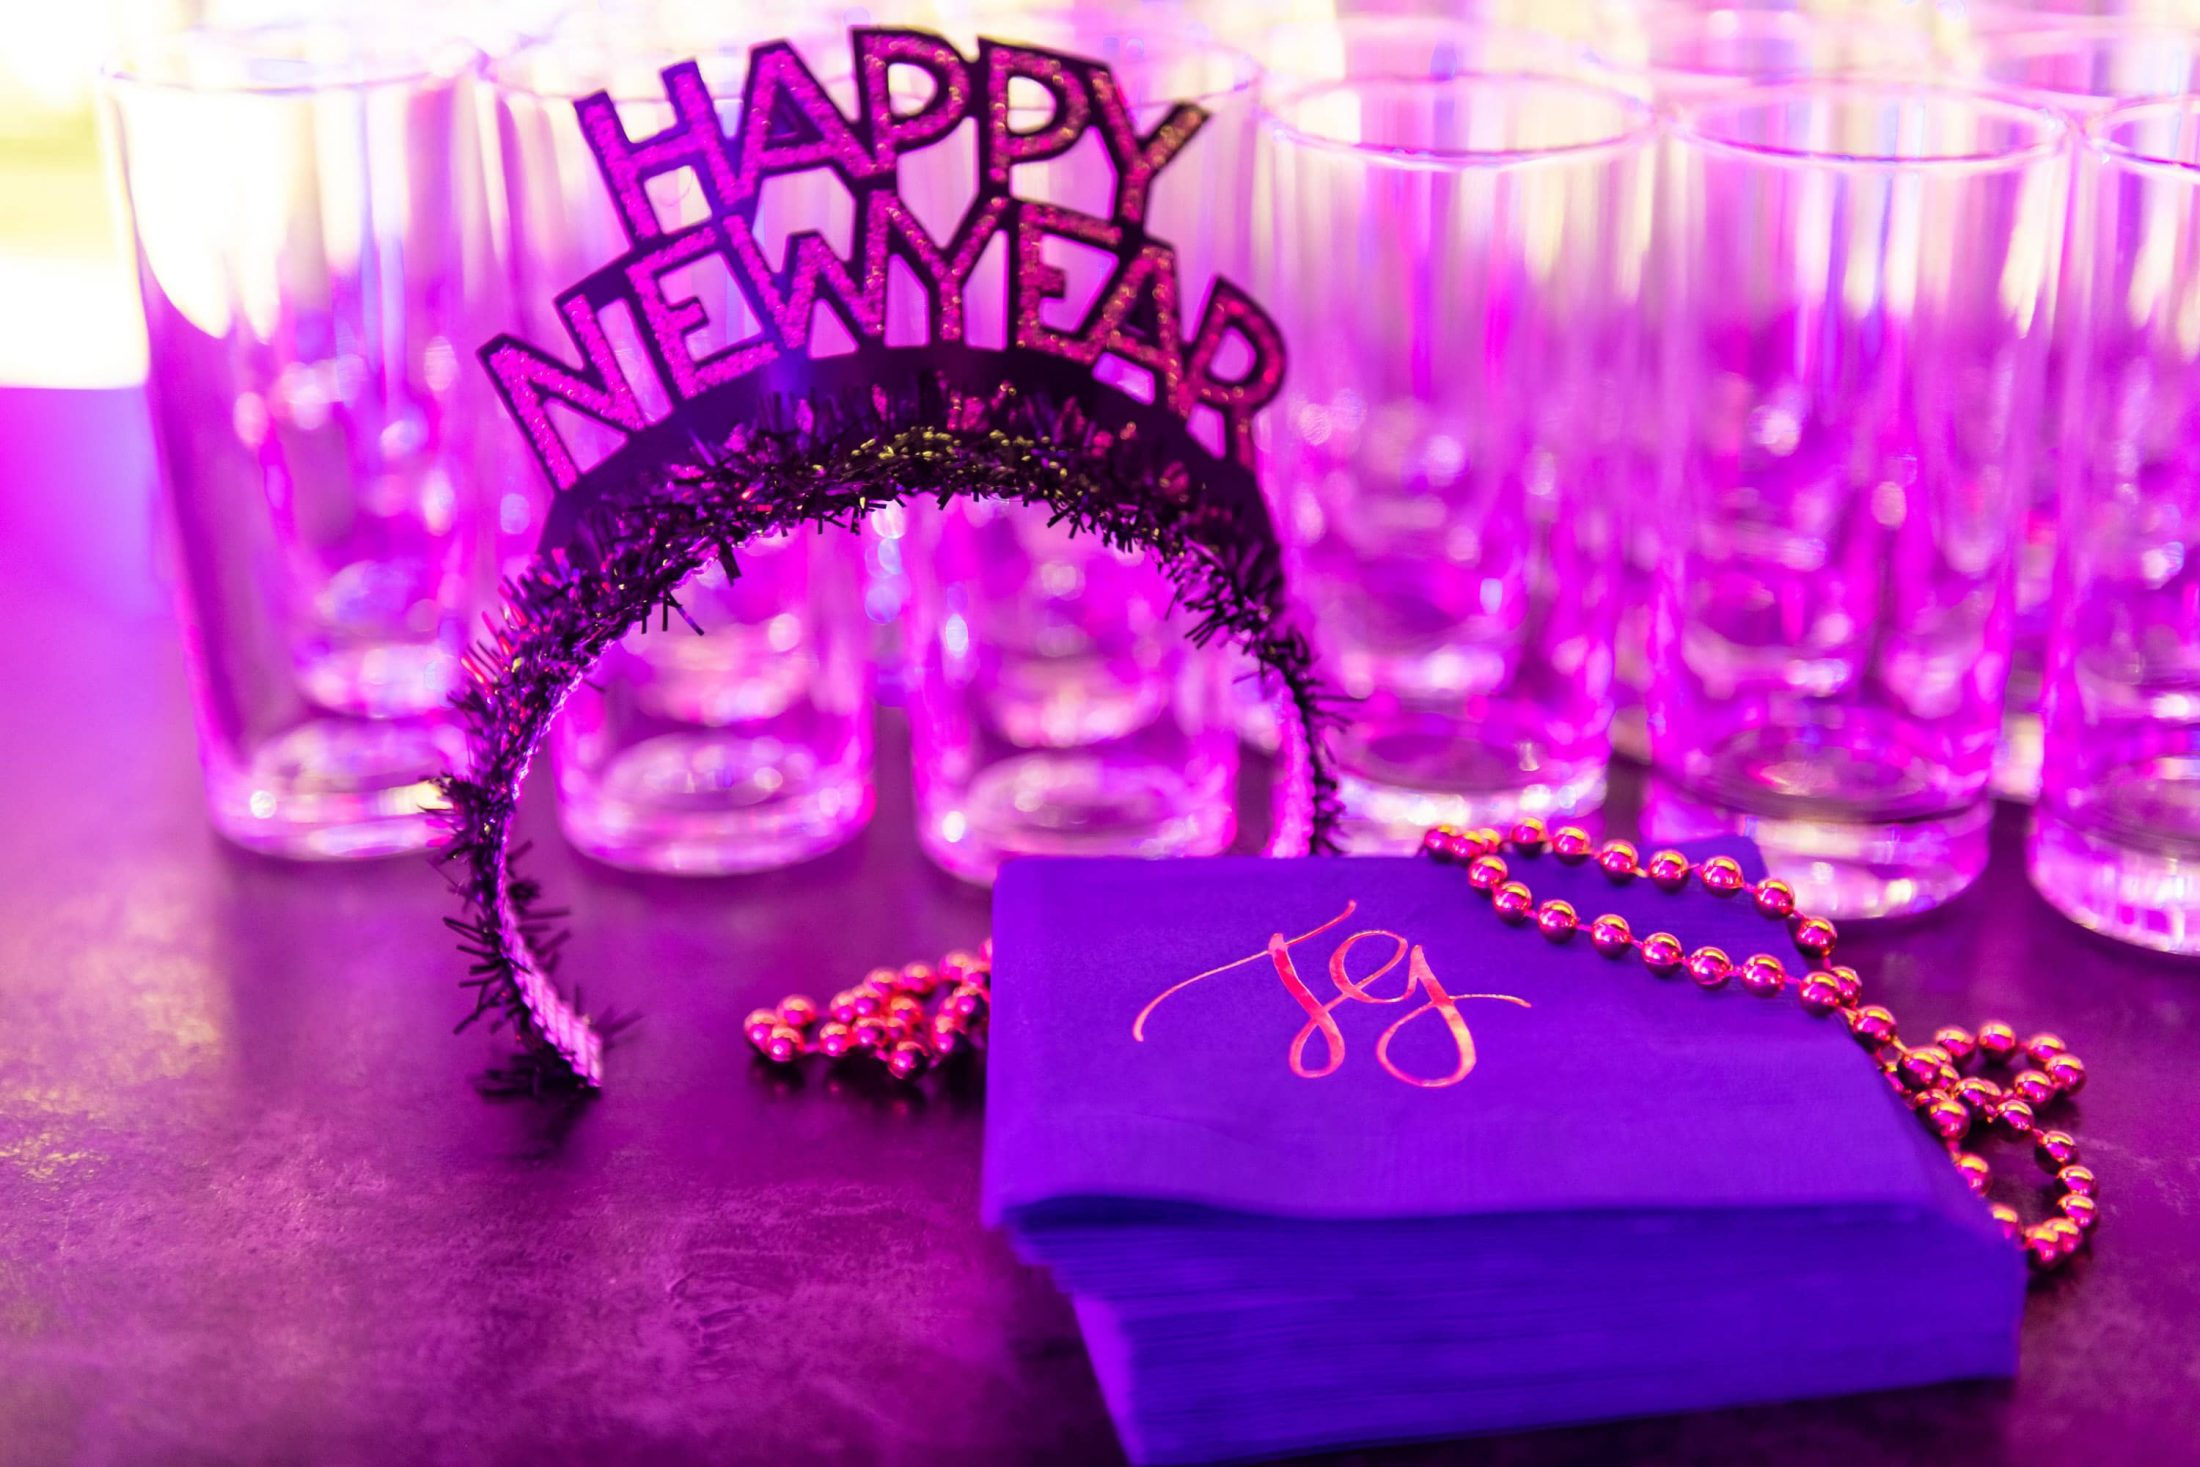 Happy New Year hat with gold necklace and monogrammed blue napkins at champagne bottle-inspired reception at this NYE wedding in New York City | Photo by Gruber Photo